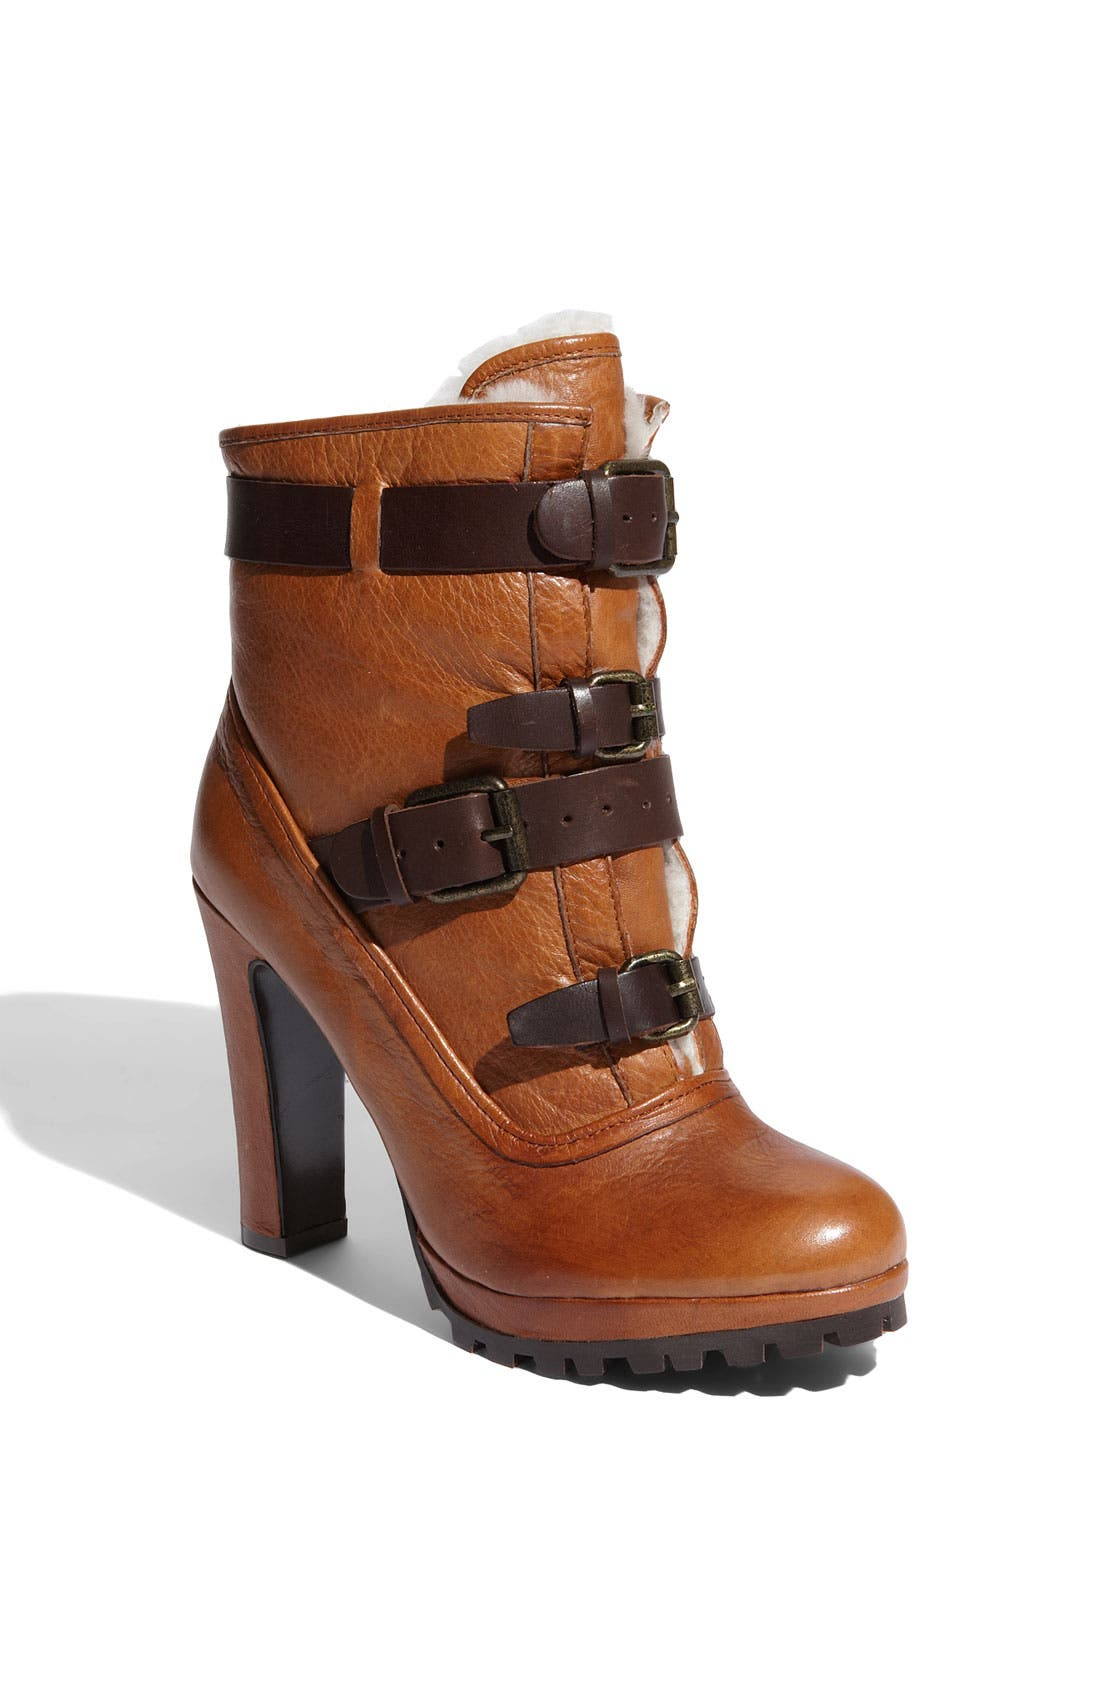 Alternate Image 1 Selected - Dolce Vita 'Josh' Ankle Boot